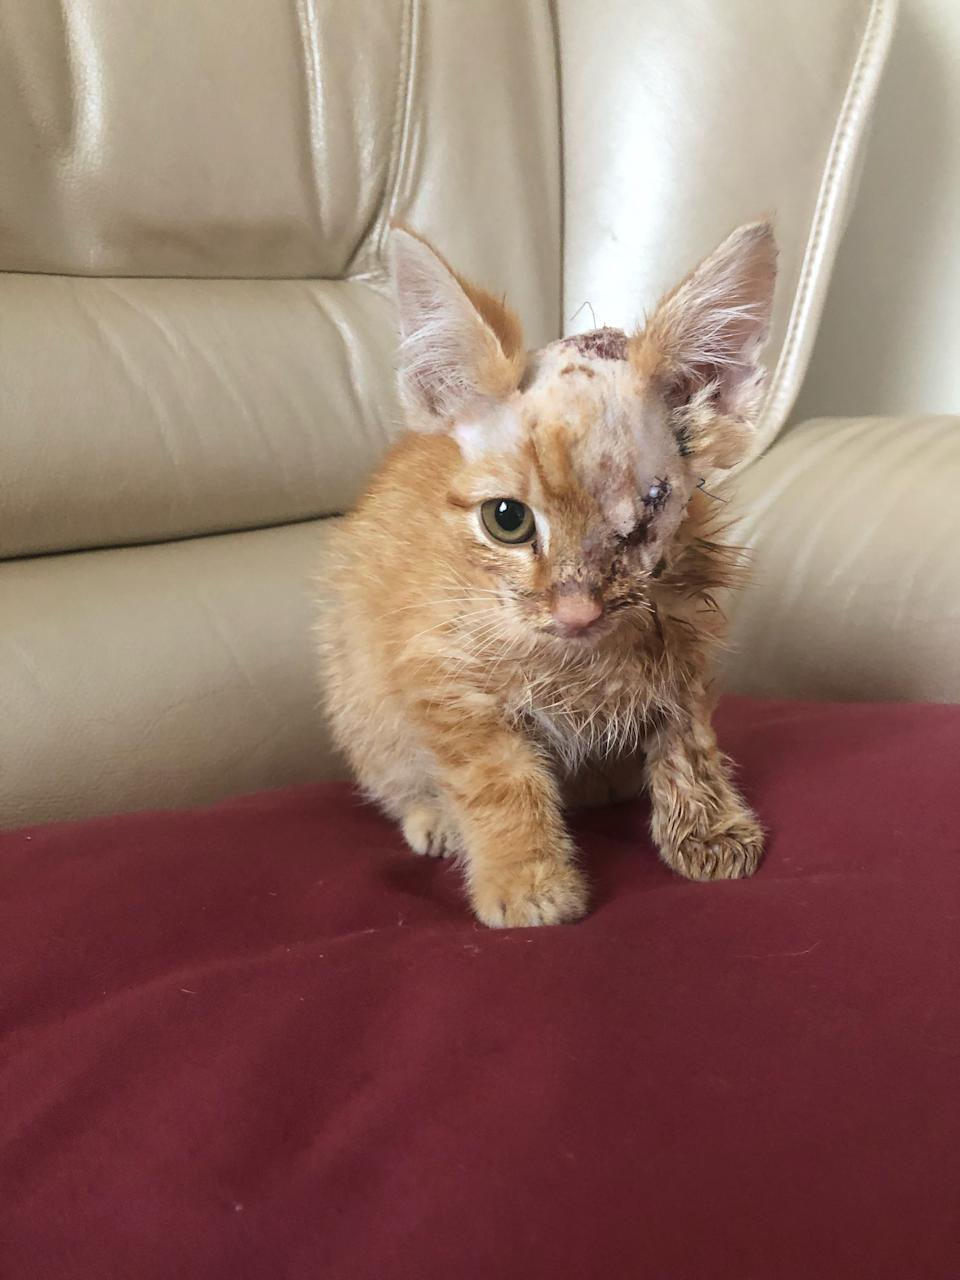 Pirate the kitten after surgery